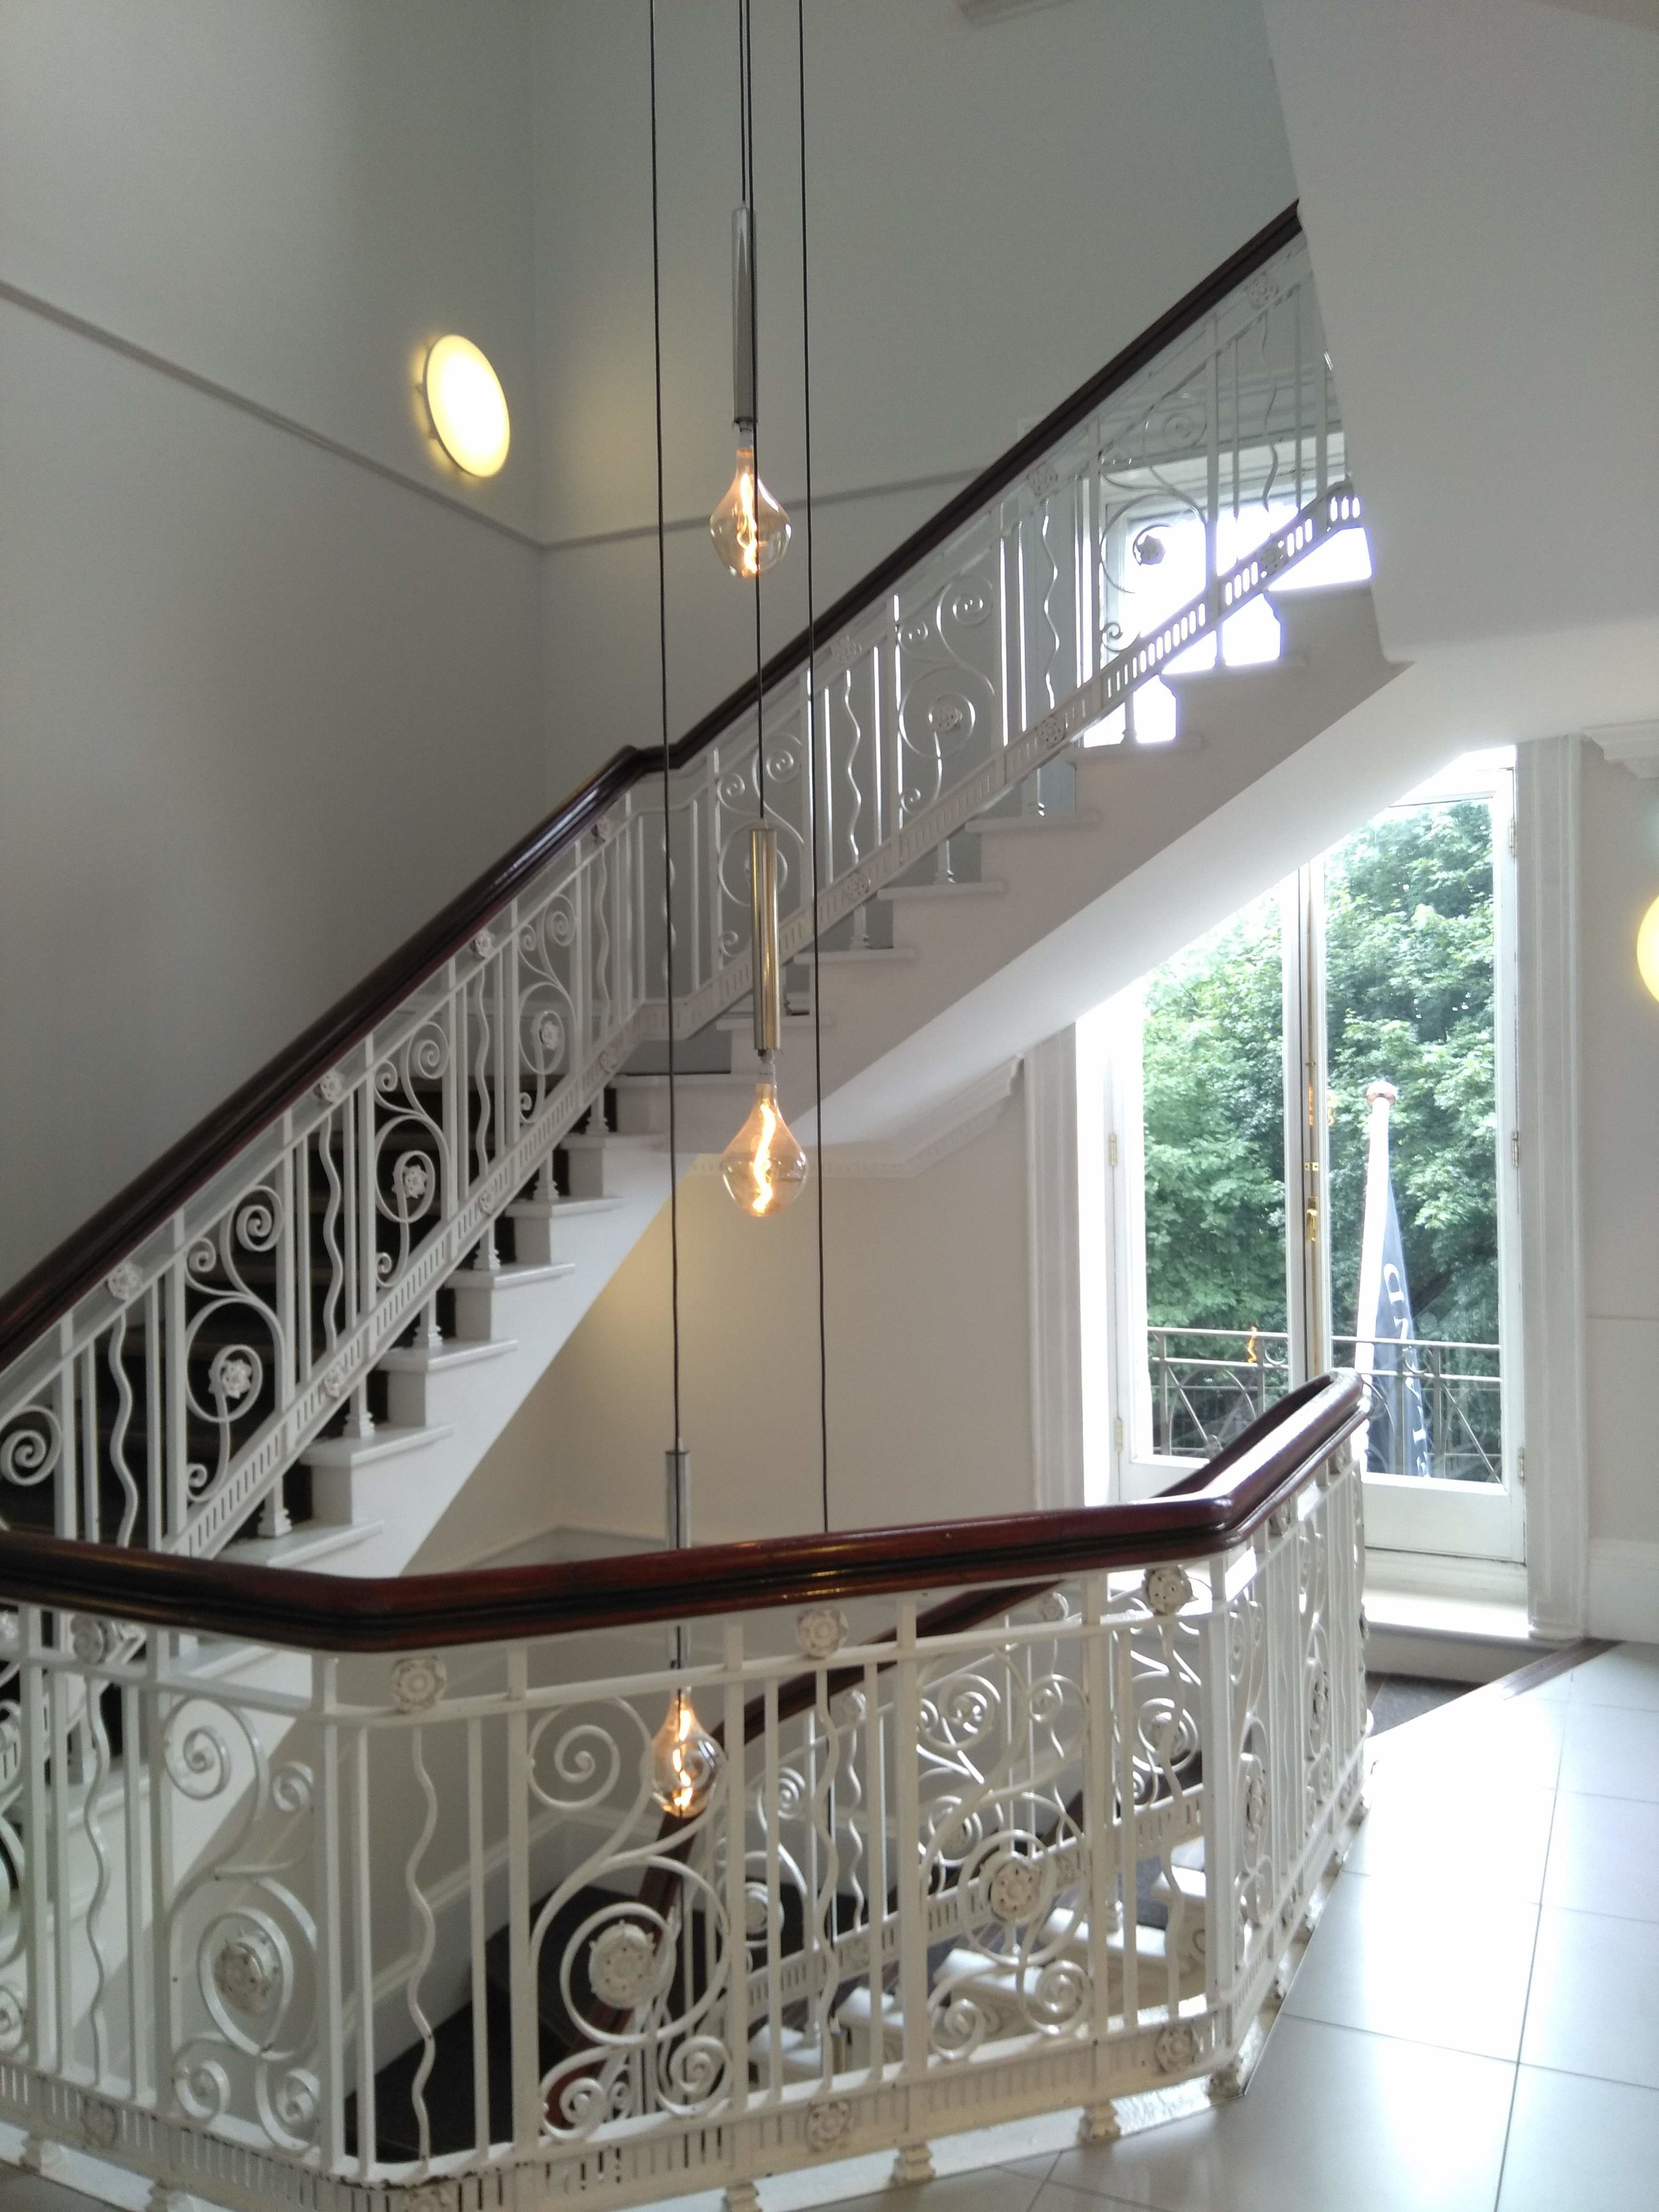 What a stunning staircase, 114 Grafton St is a former bank building and a protected structure from the early 1900's, lovely to see these old features retained